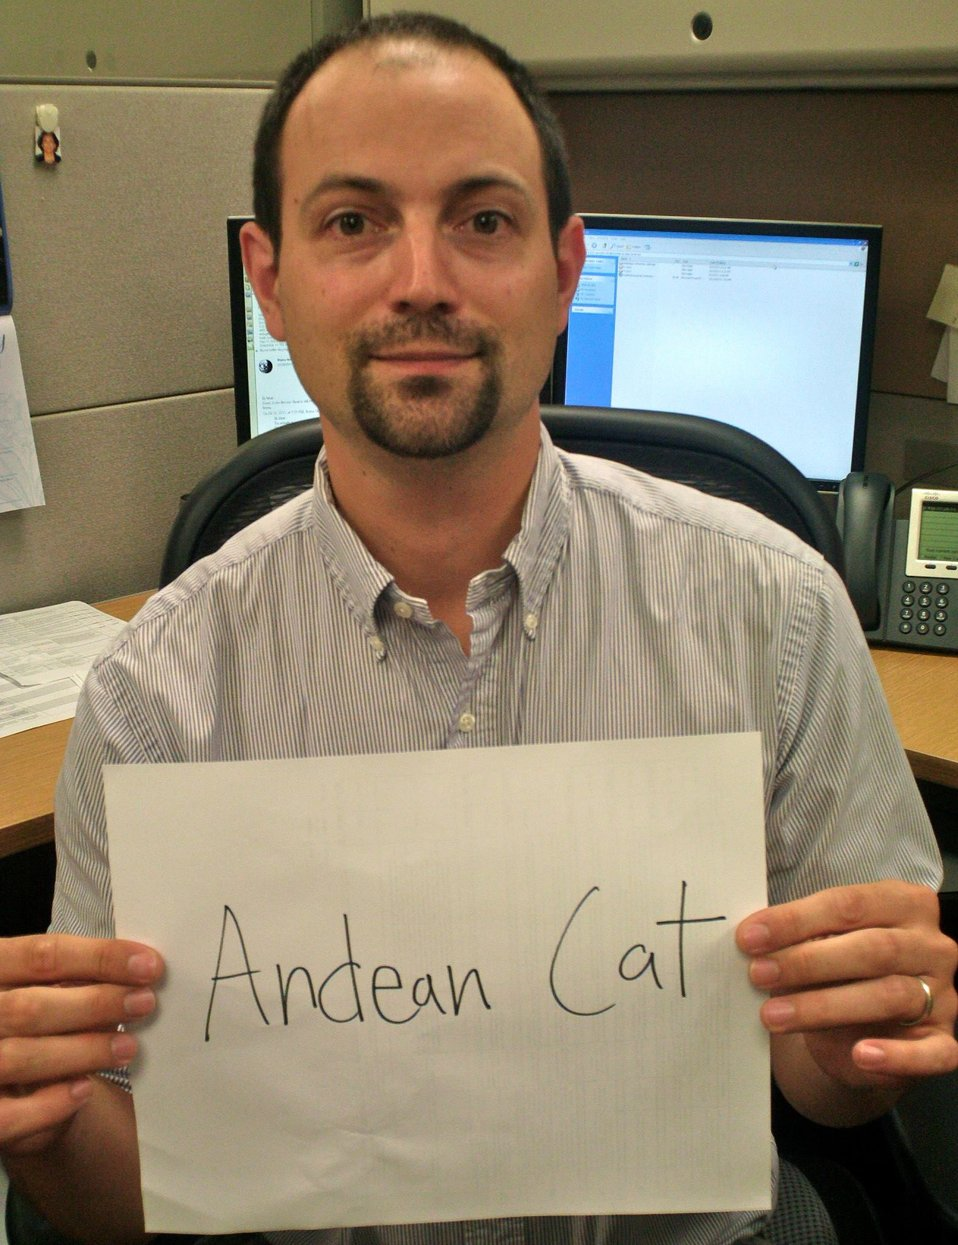 Matt Muir, 'Andean Cat,' Credit: USFWS